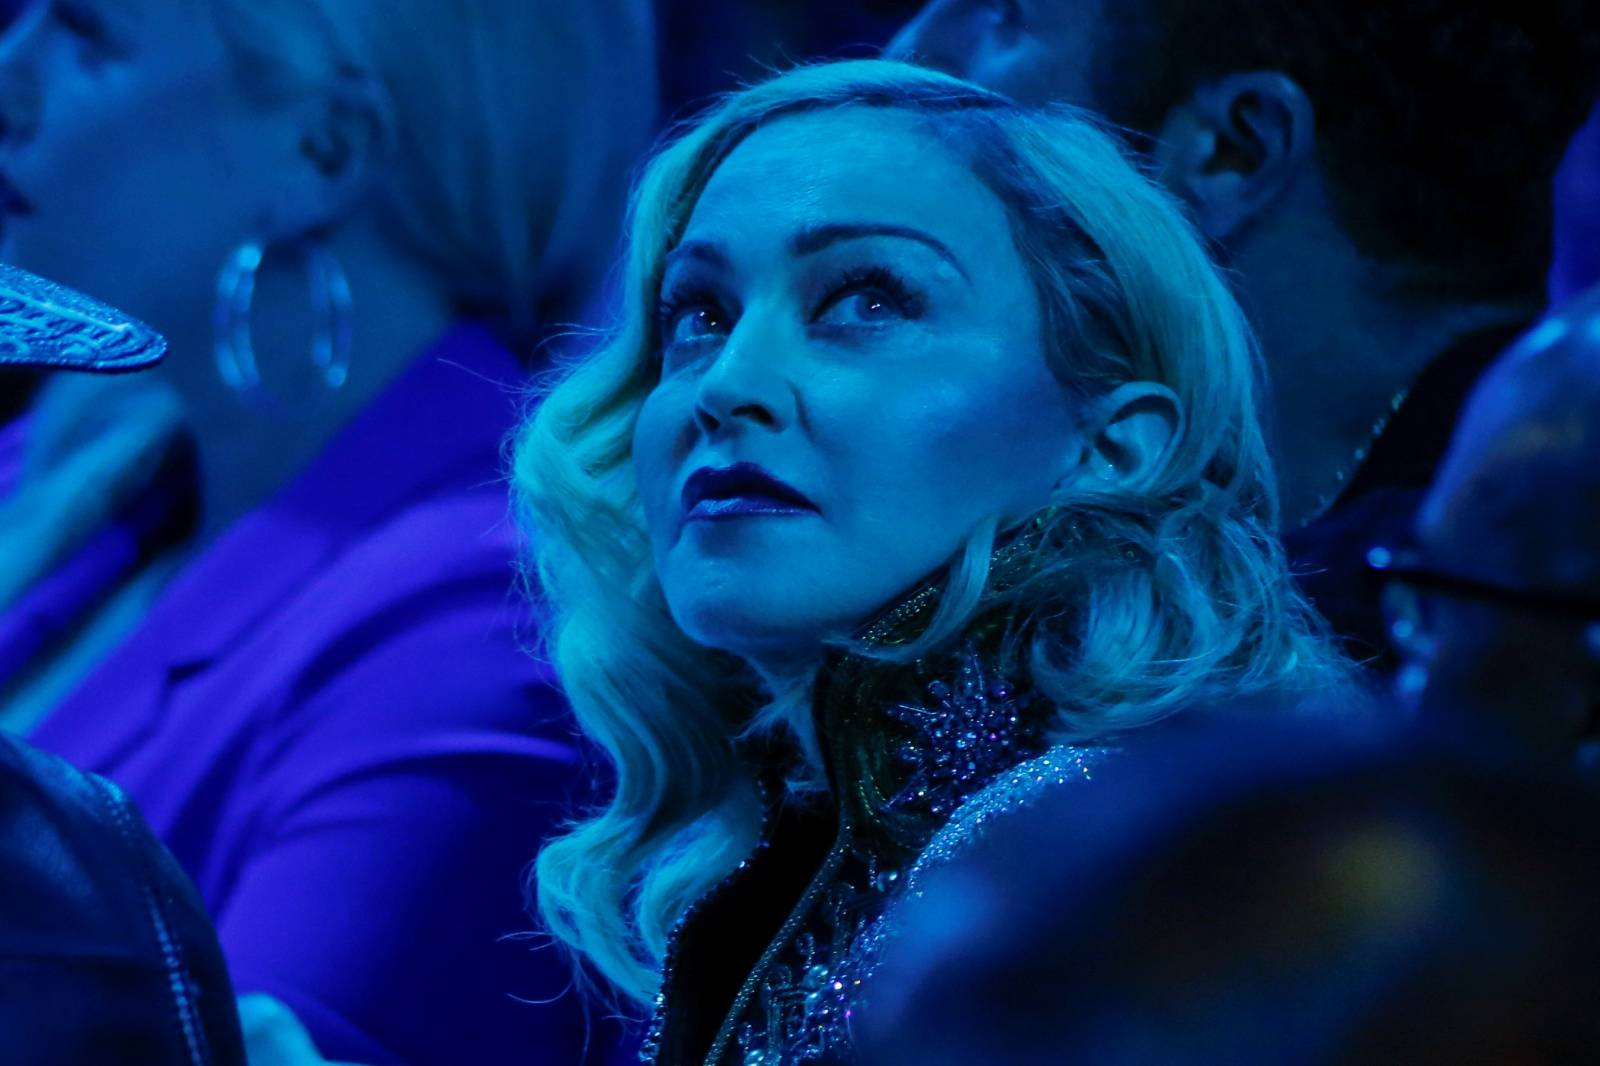 Singer Madonna attends the 30th annual GLAAD awards ceremony in New York City, New York